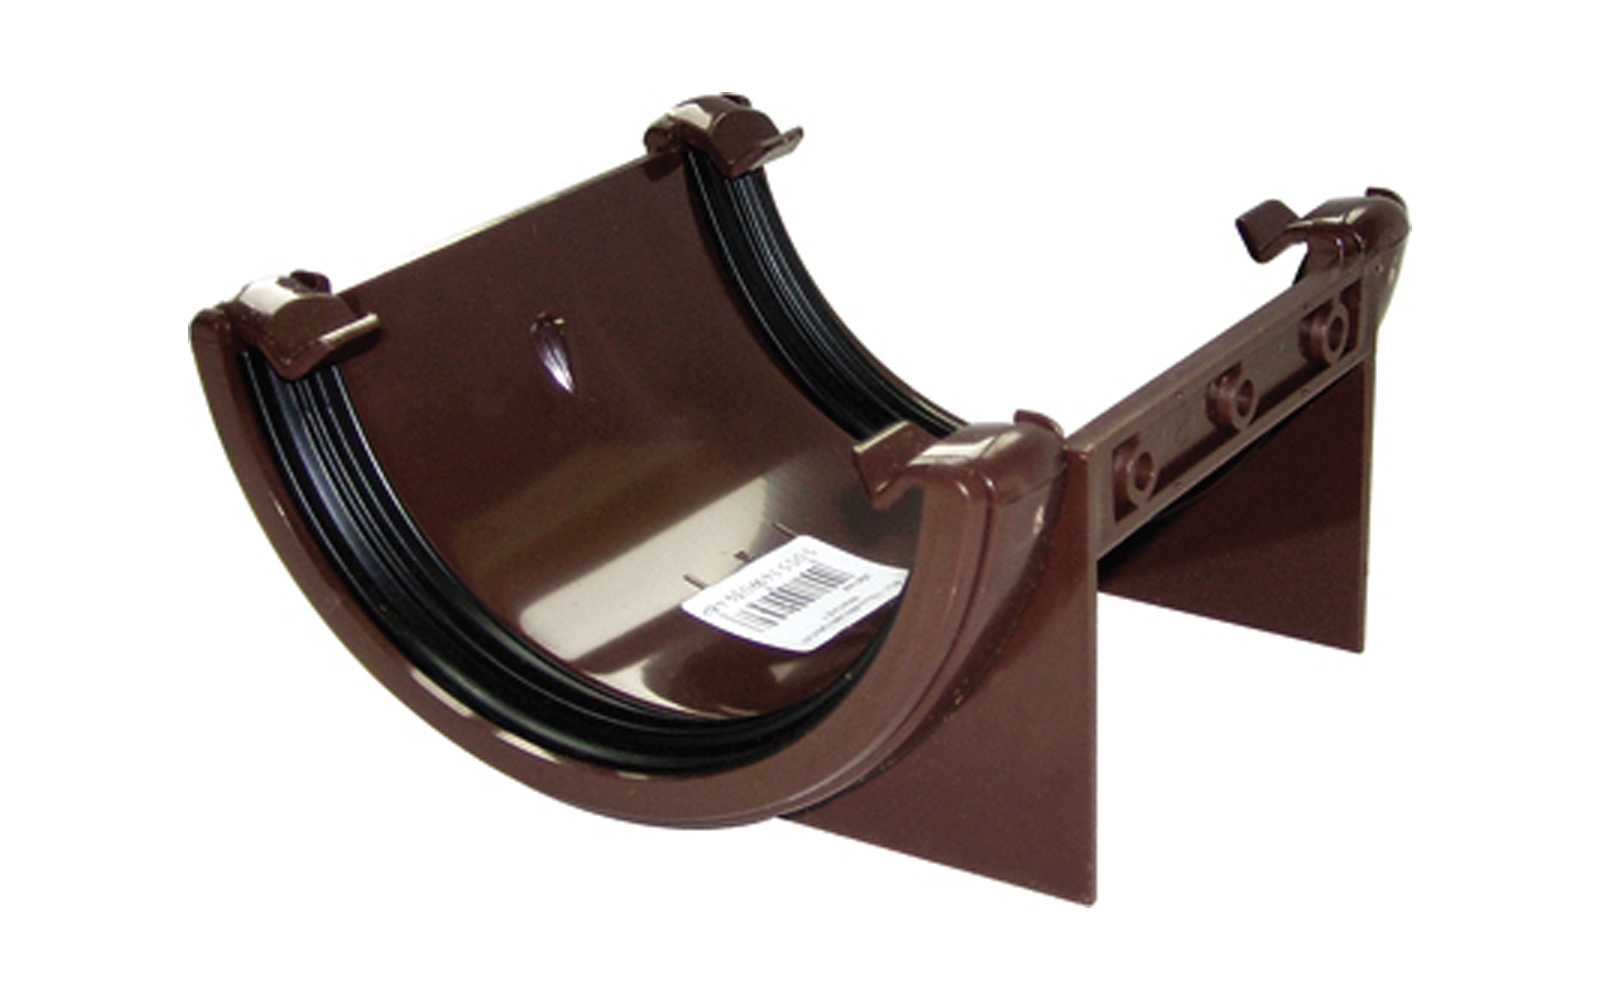 FLOPLAST HALF ROUND GUTTER - RU1 UNION BRACKET - BROWN